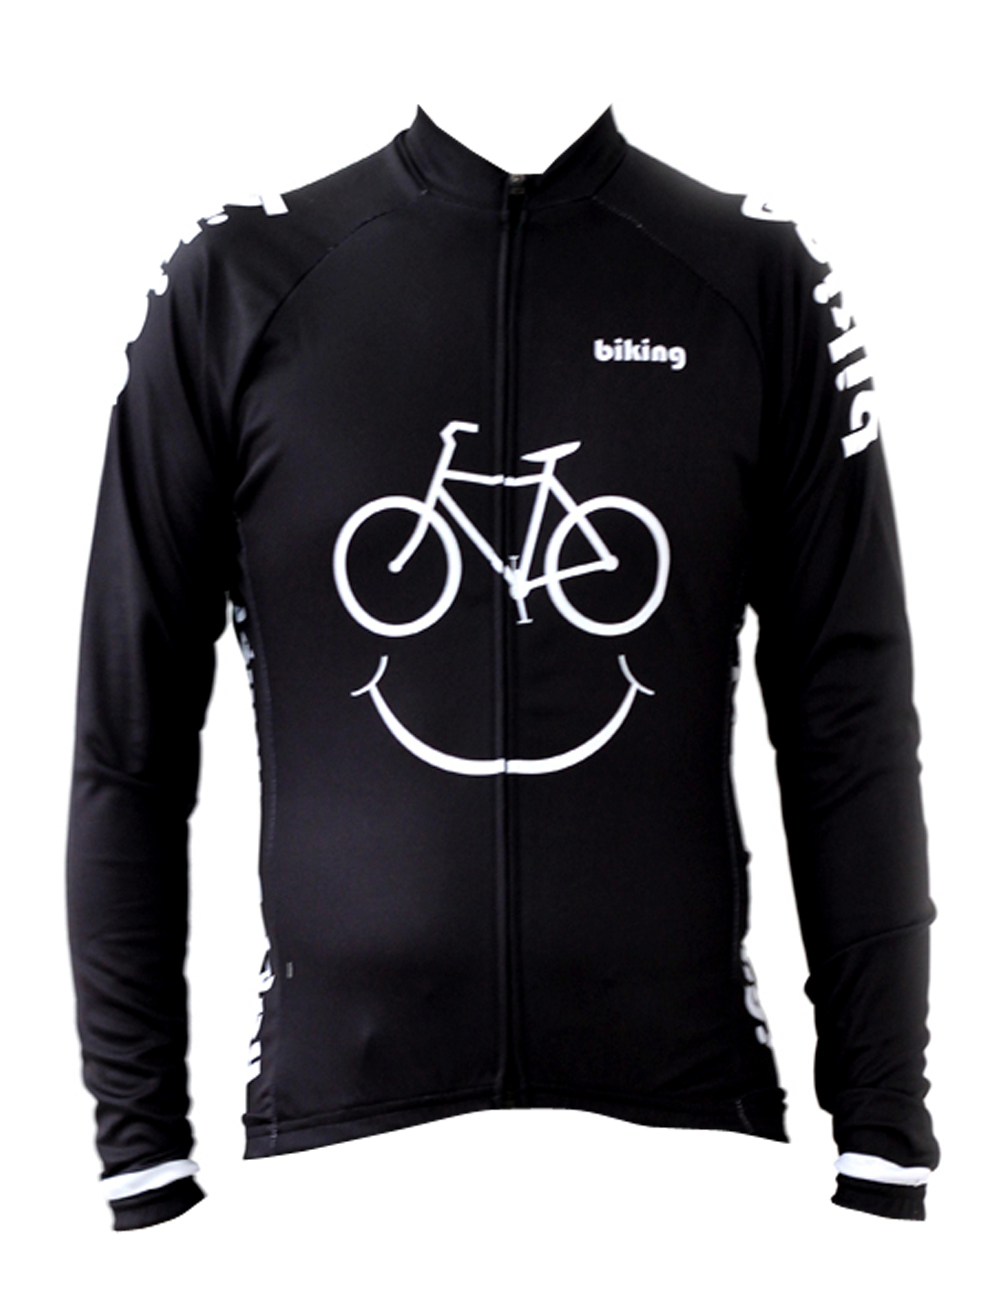 Black Smile Bikes Alien Sportswear Mens Long Sleeve Cycling Jersey Cycling Clothing Bike Shirt Size 2xs To 6xl Sales Of Quality Assurance